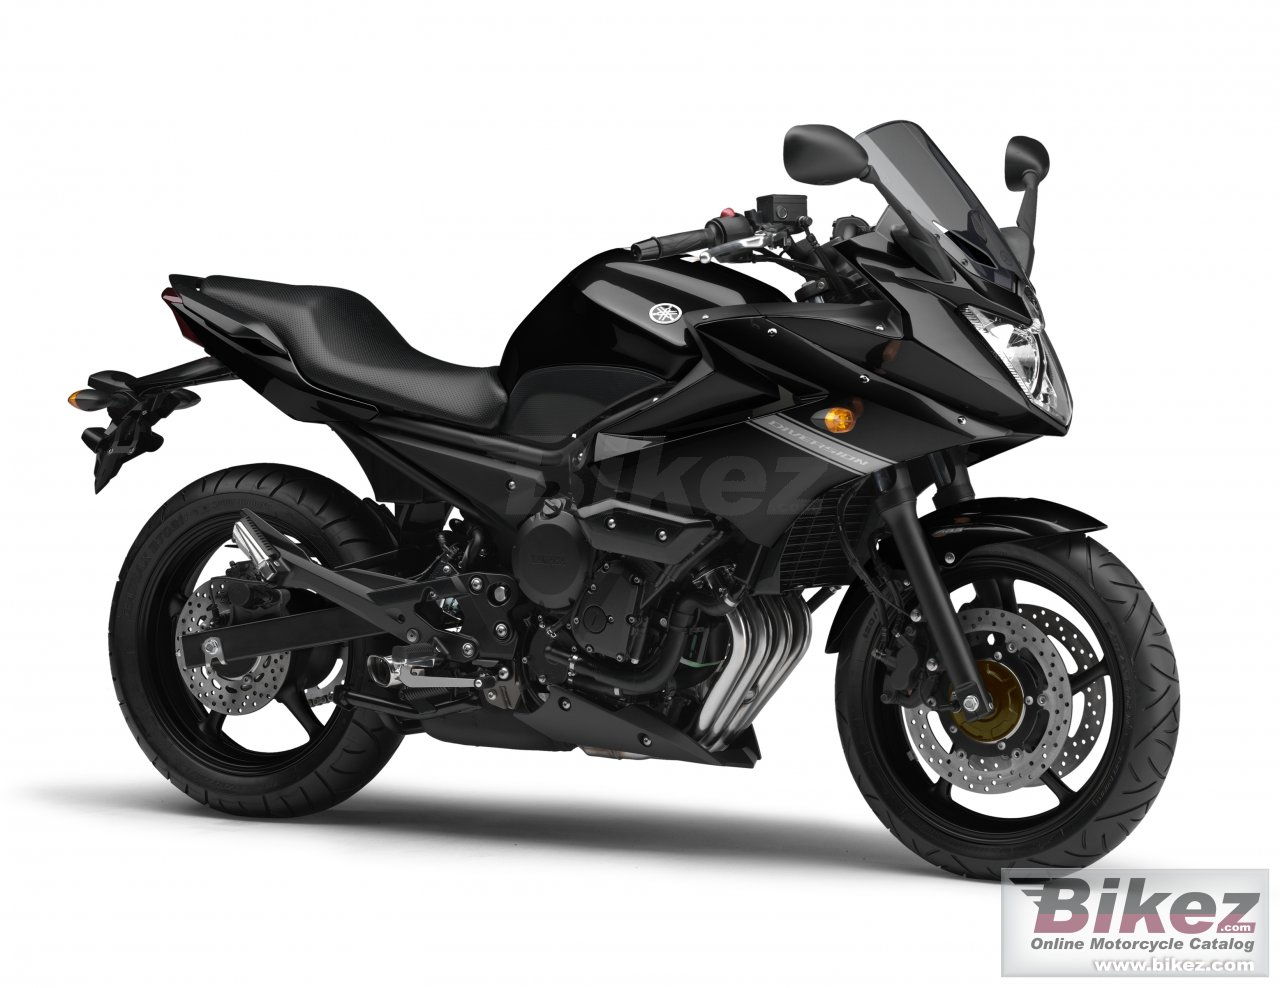 Big Yamaha xj6 diversion abs picture and wallpaper from Bikez.com